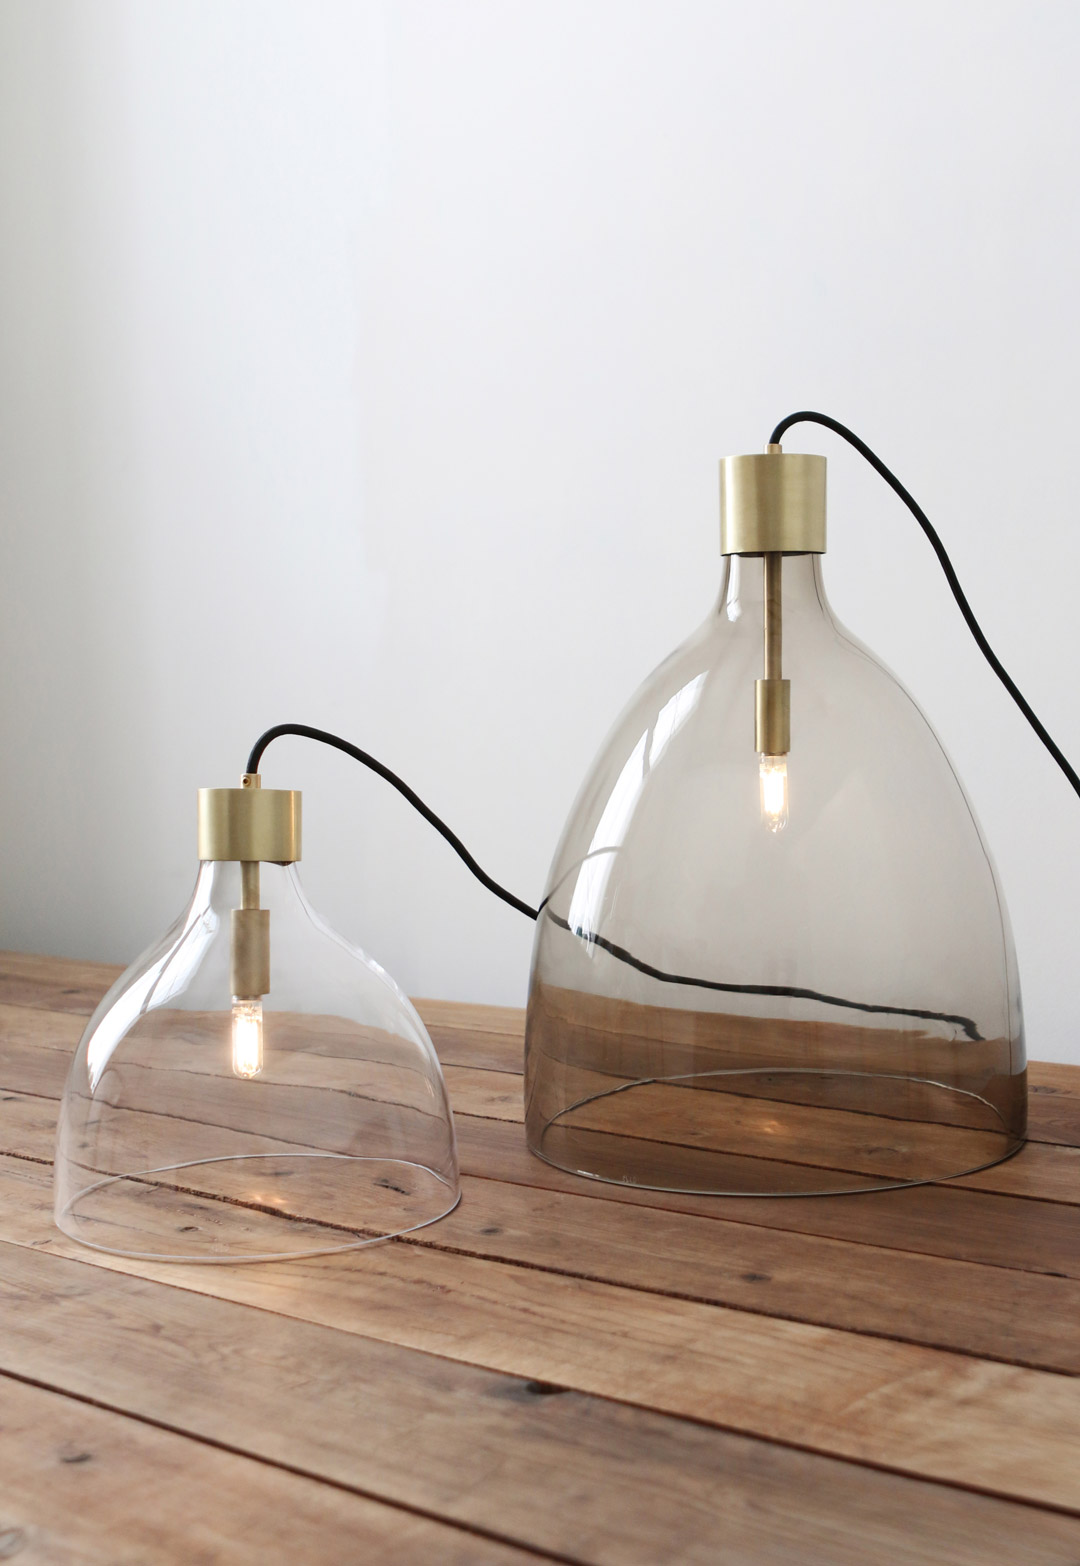 BELL JAR LIGHT Small with clear glass, tall with olivin glass Both with brushed brass metal finish